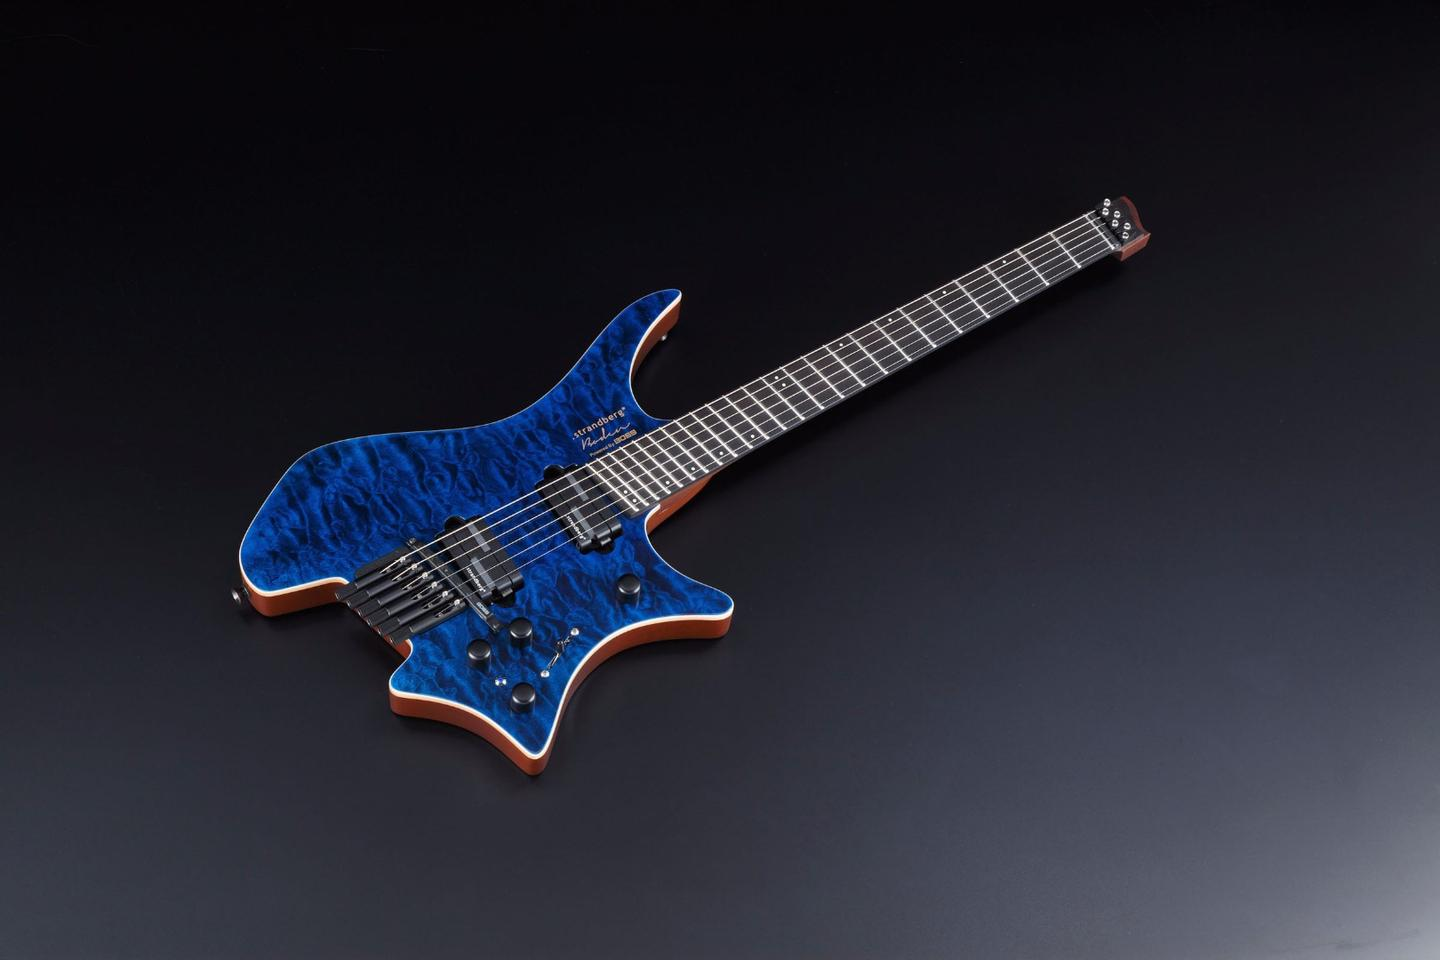 The V-BDN VG-Strandberg guitar essentially takes the Swedish guitar maker's future modern Bodin model and throws in Boss V-Guitar modeling technology